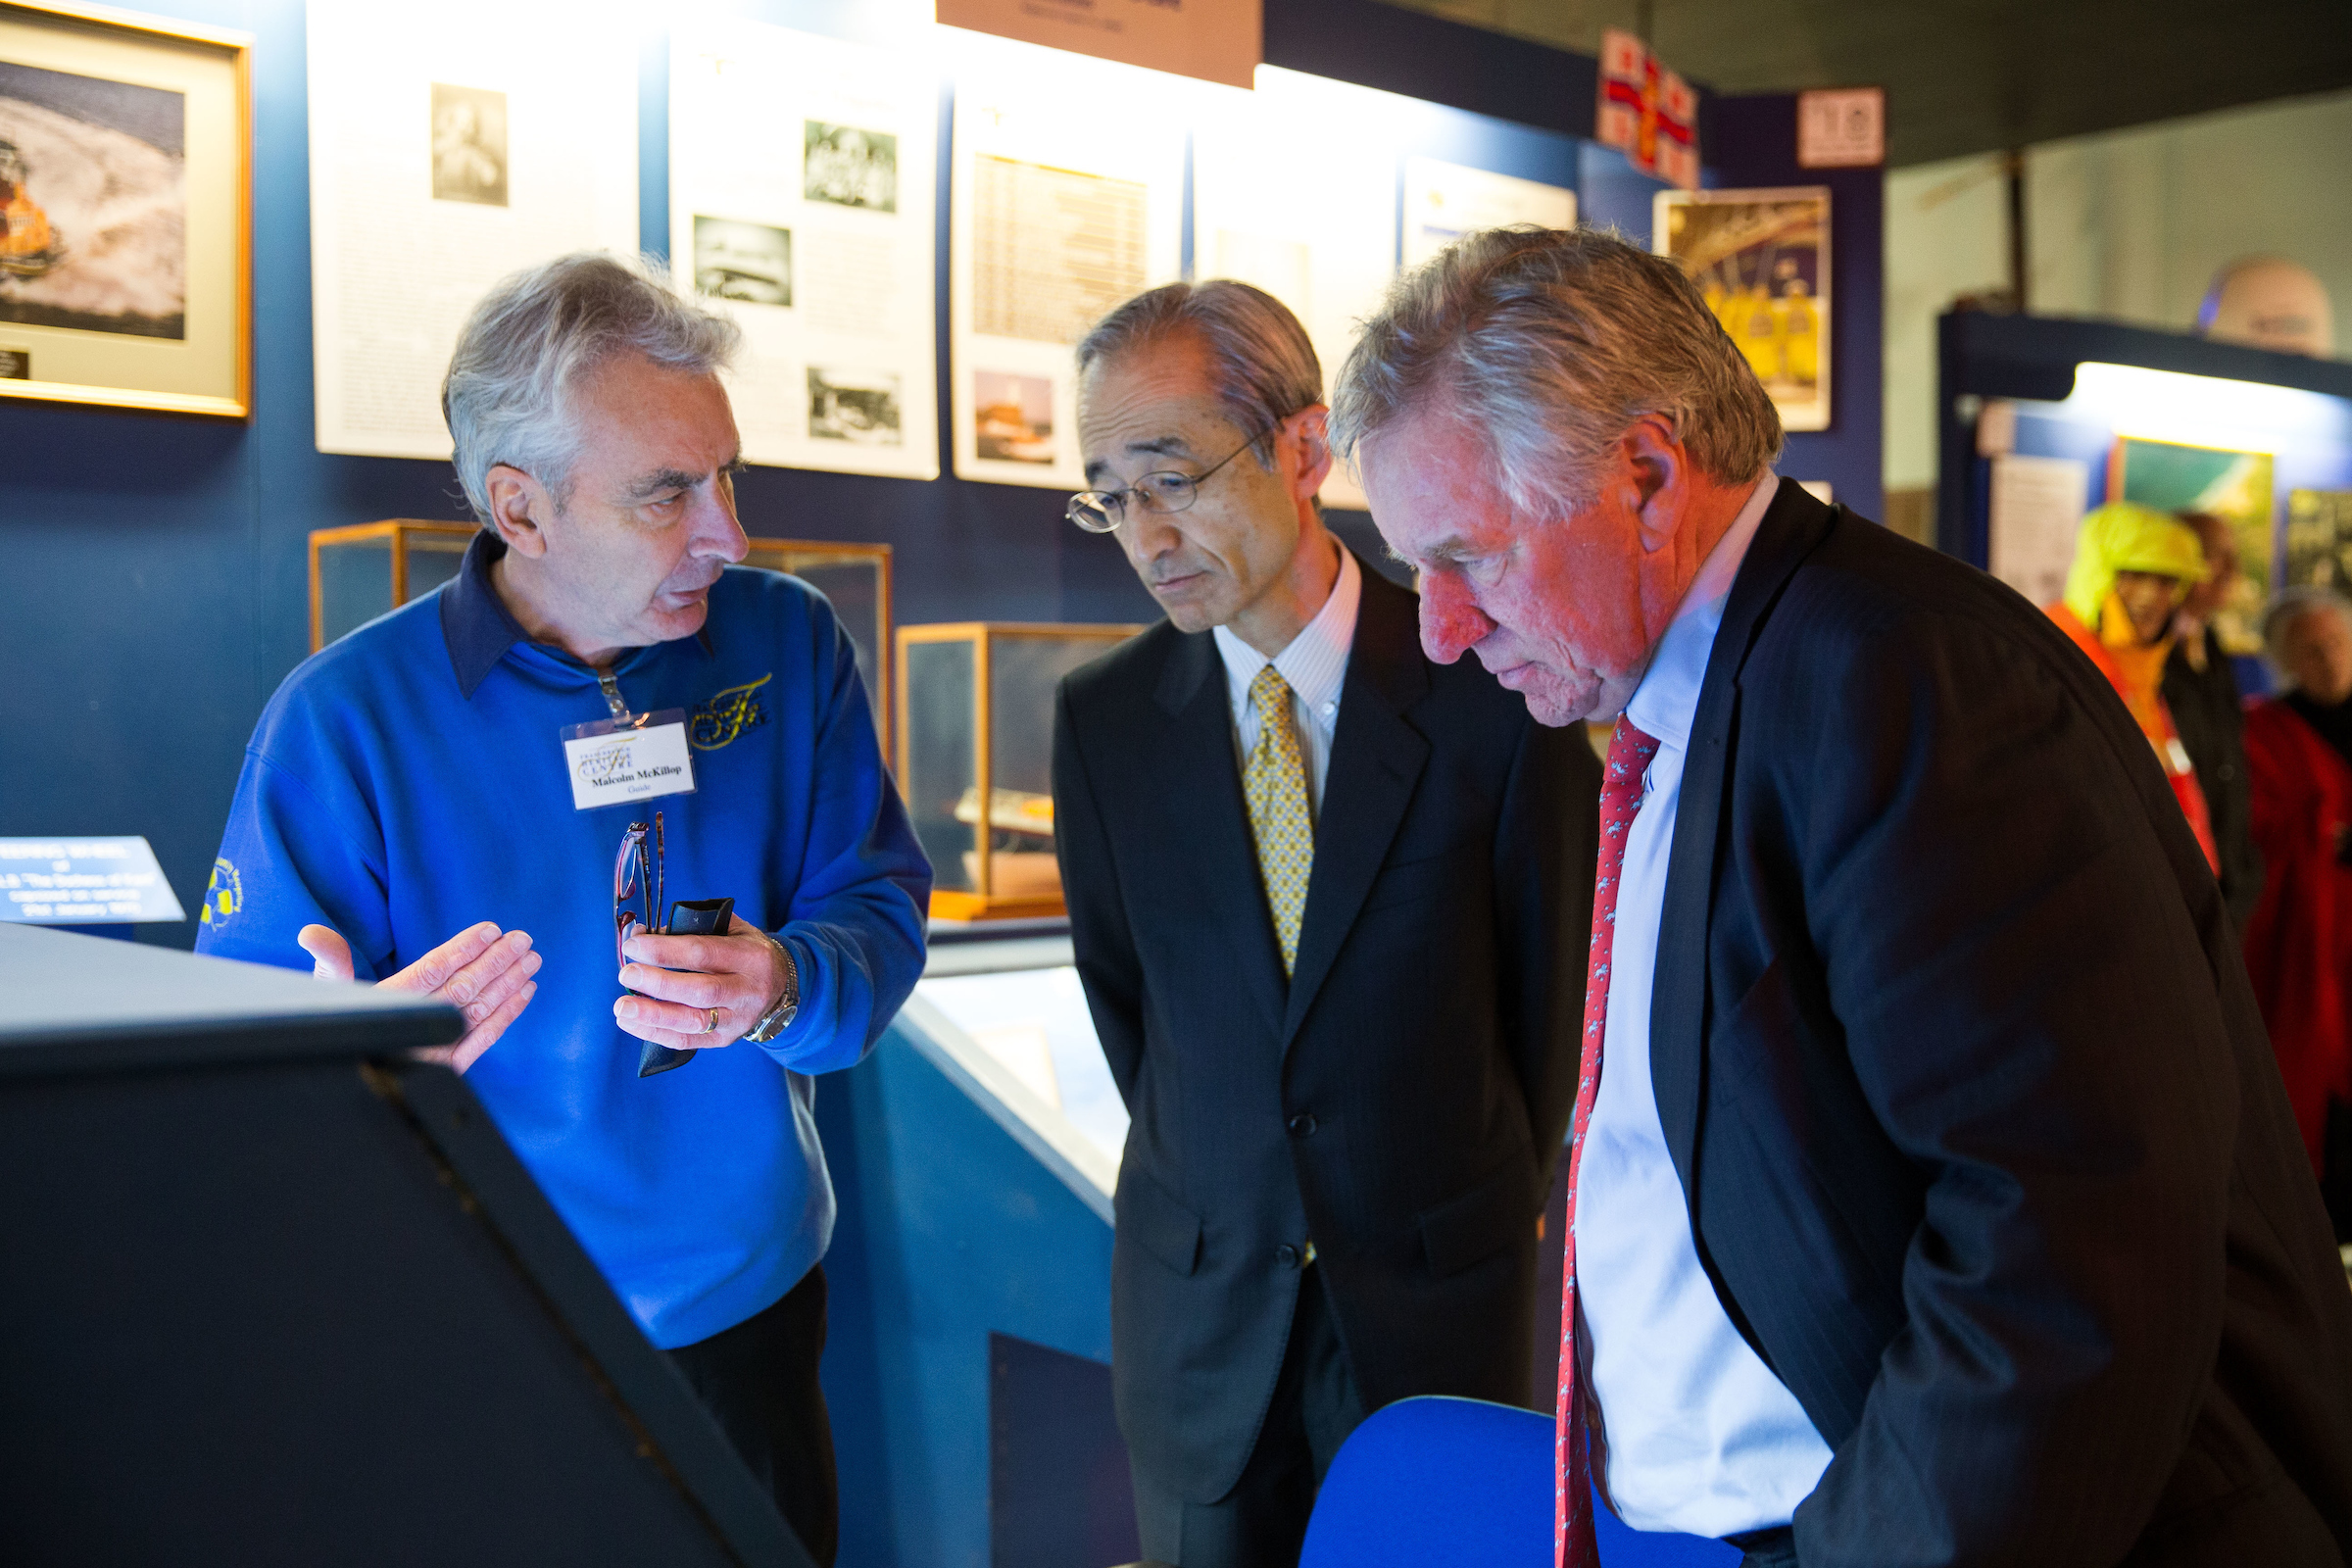 Tuesday 18th October  2016, Aberdeen, Scotland. Malcolm McKillop, author of The Glover trail in North-East Scotland and Nobuyuki Hirano, president of Mitsubishi UFJ Financial Group Inc. and chairman of the Japan Banking Association, Martin Gilbert, Chief Executive of Aberdeen Asset Management PLC  visits the Glover exhibition  at the Fraserburgh Heritage Centre   (Photo: Ross Johnston/Newsline Media)